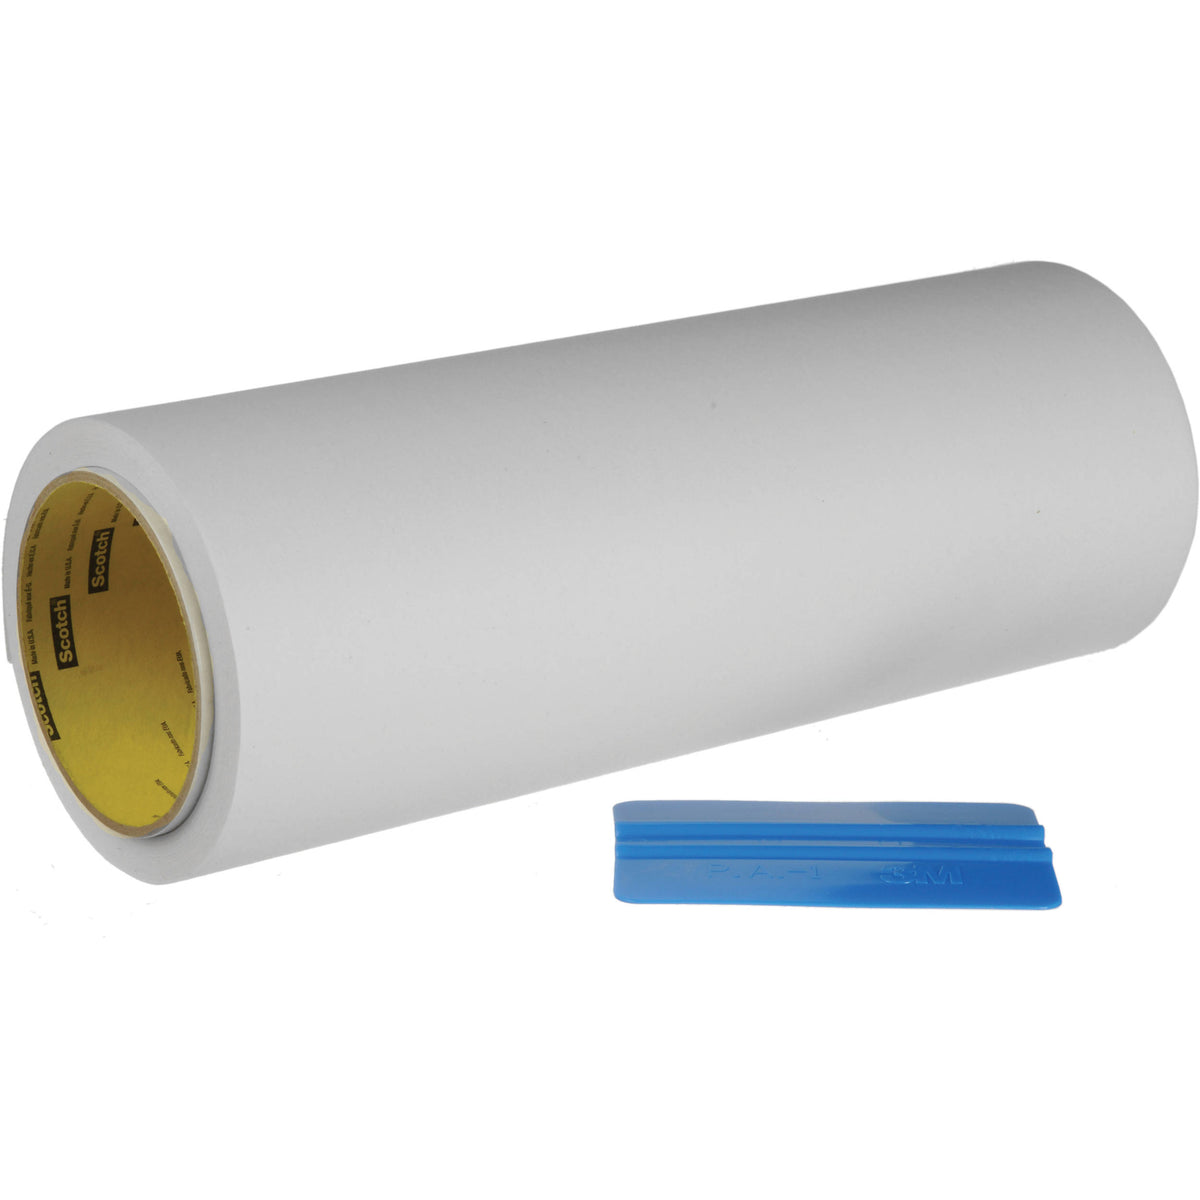 3M Scotch Positionable Mounting Adhesive - 16 in x 50 ft